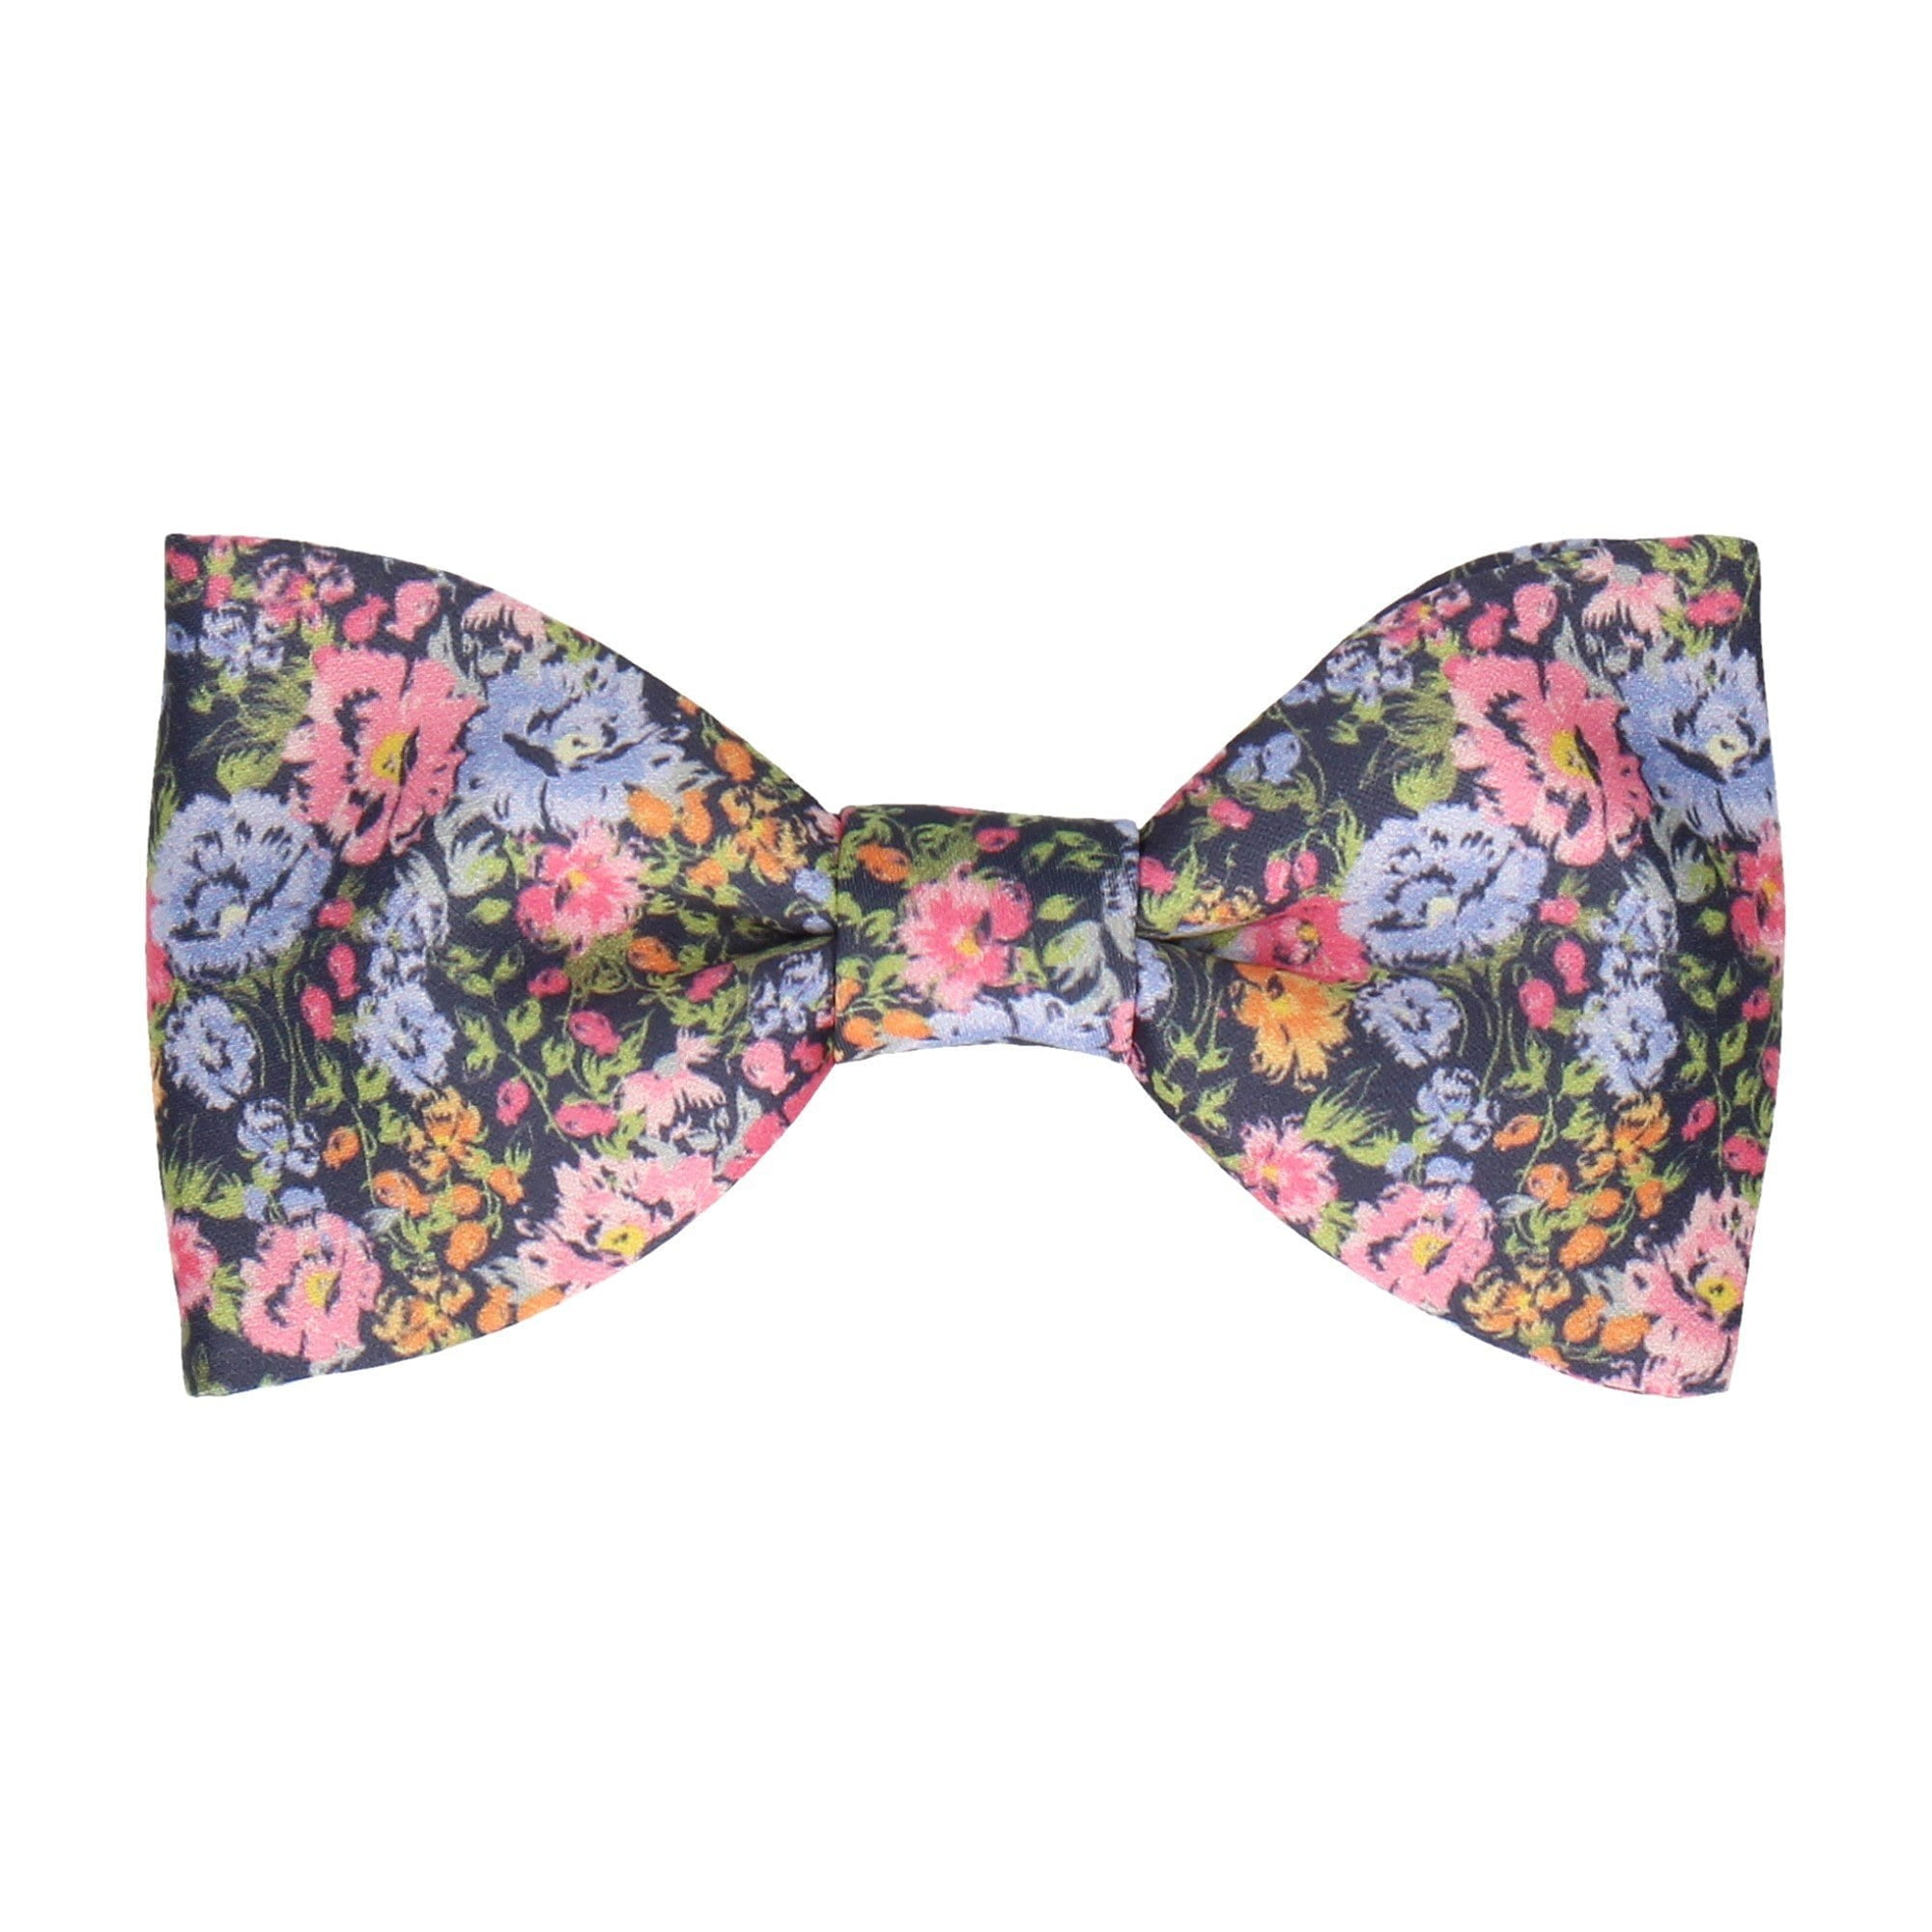 Vibrant Paisley Bow tie // Pink Blue Green /& Yellow // Pre-tied Bow tie Purple